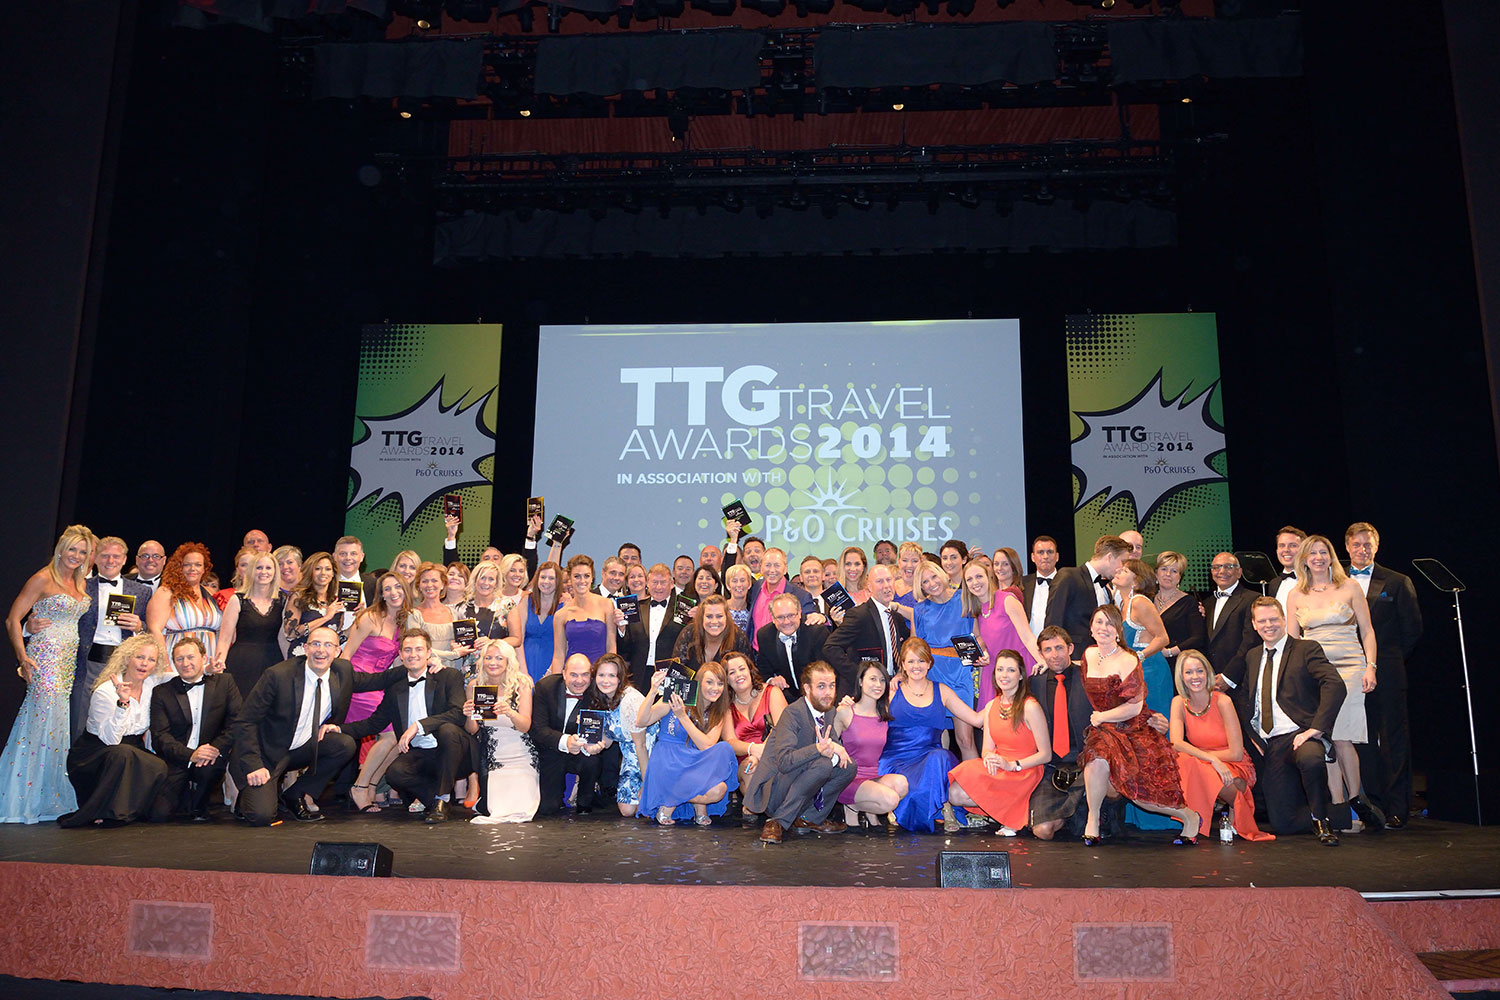 TTG Travel Awards 2014 - all the winners